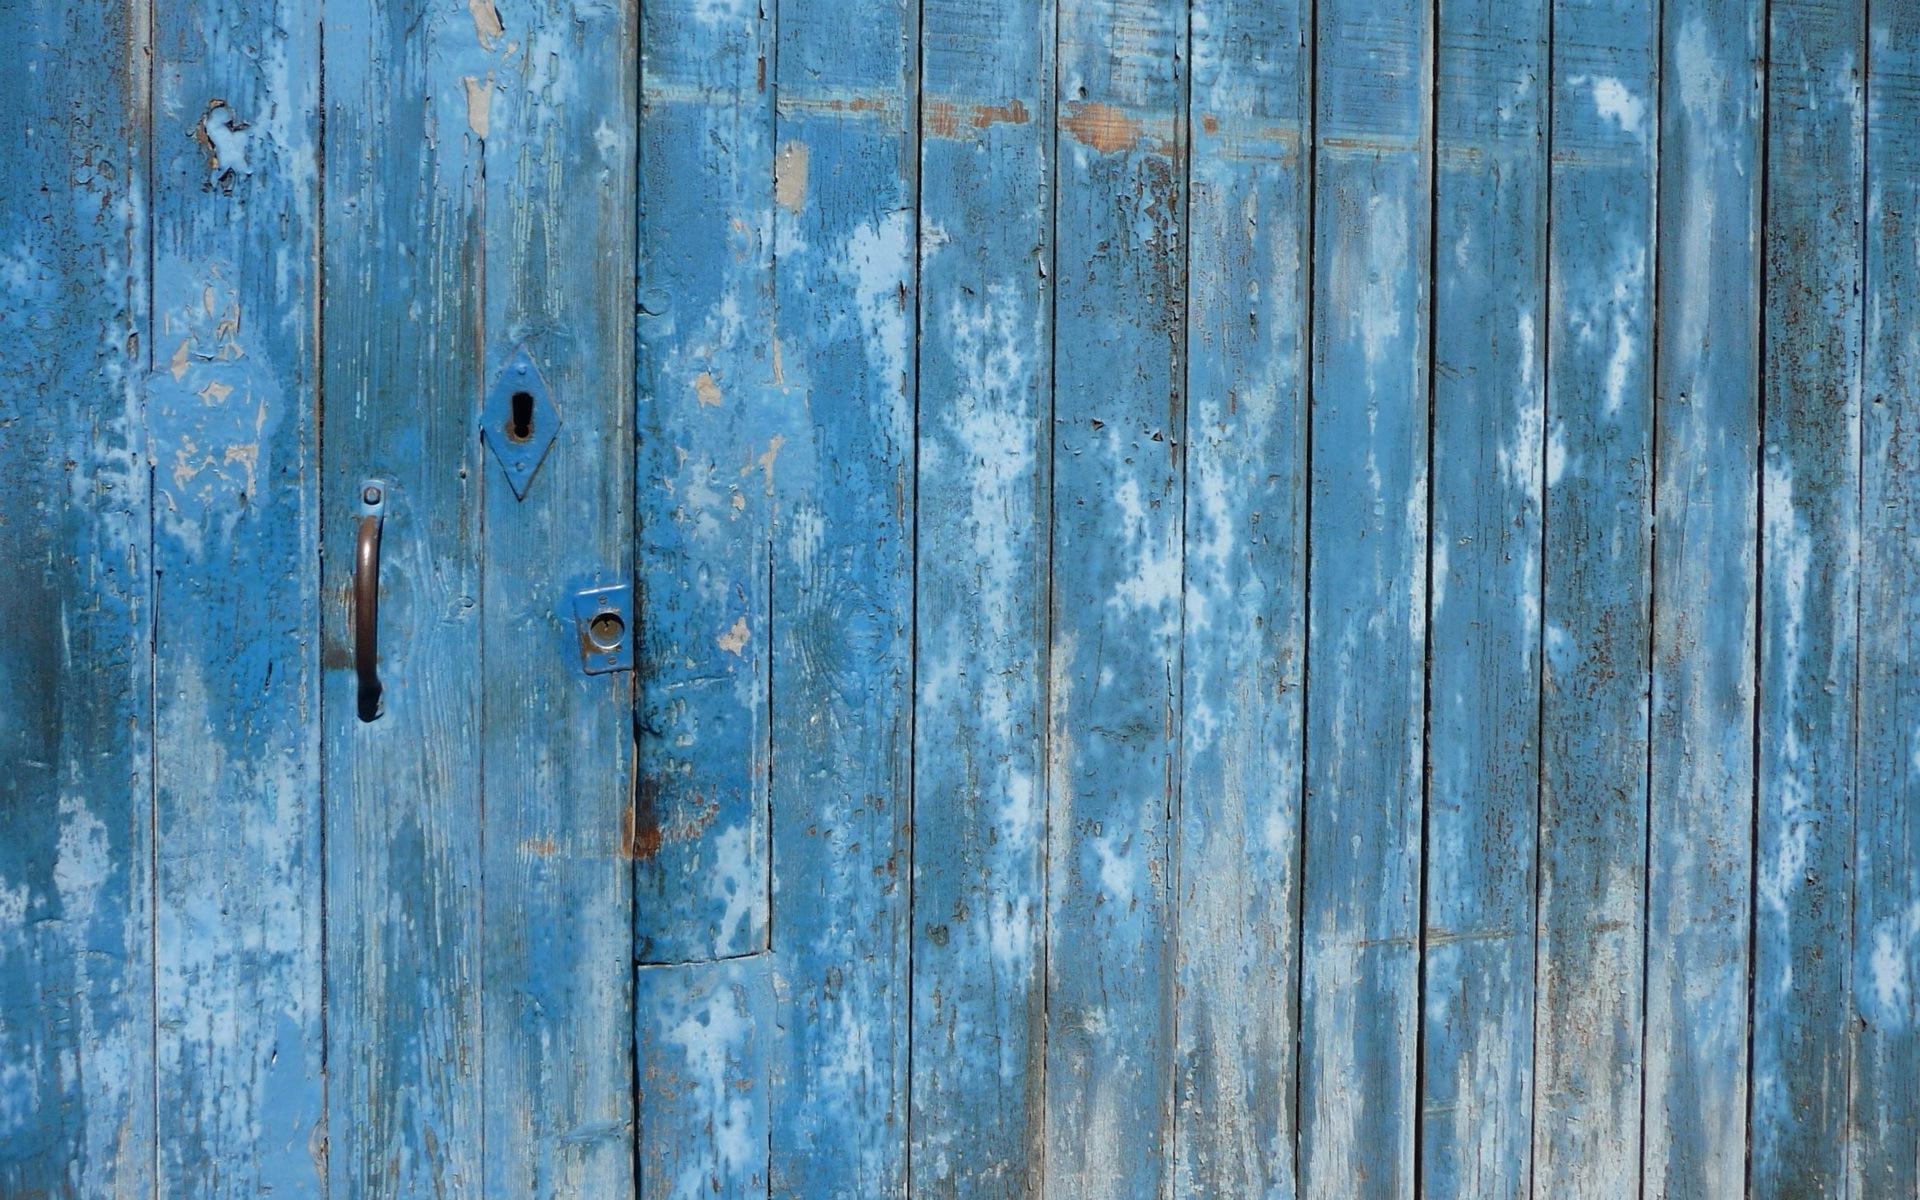 Blue Door Texture Wood Abstract hd wallpaper #1843443 1231